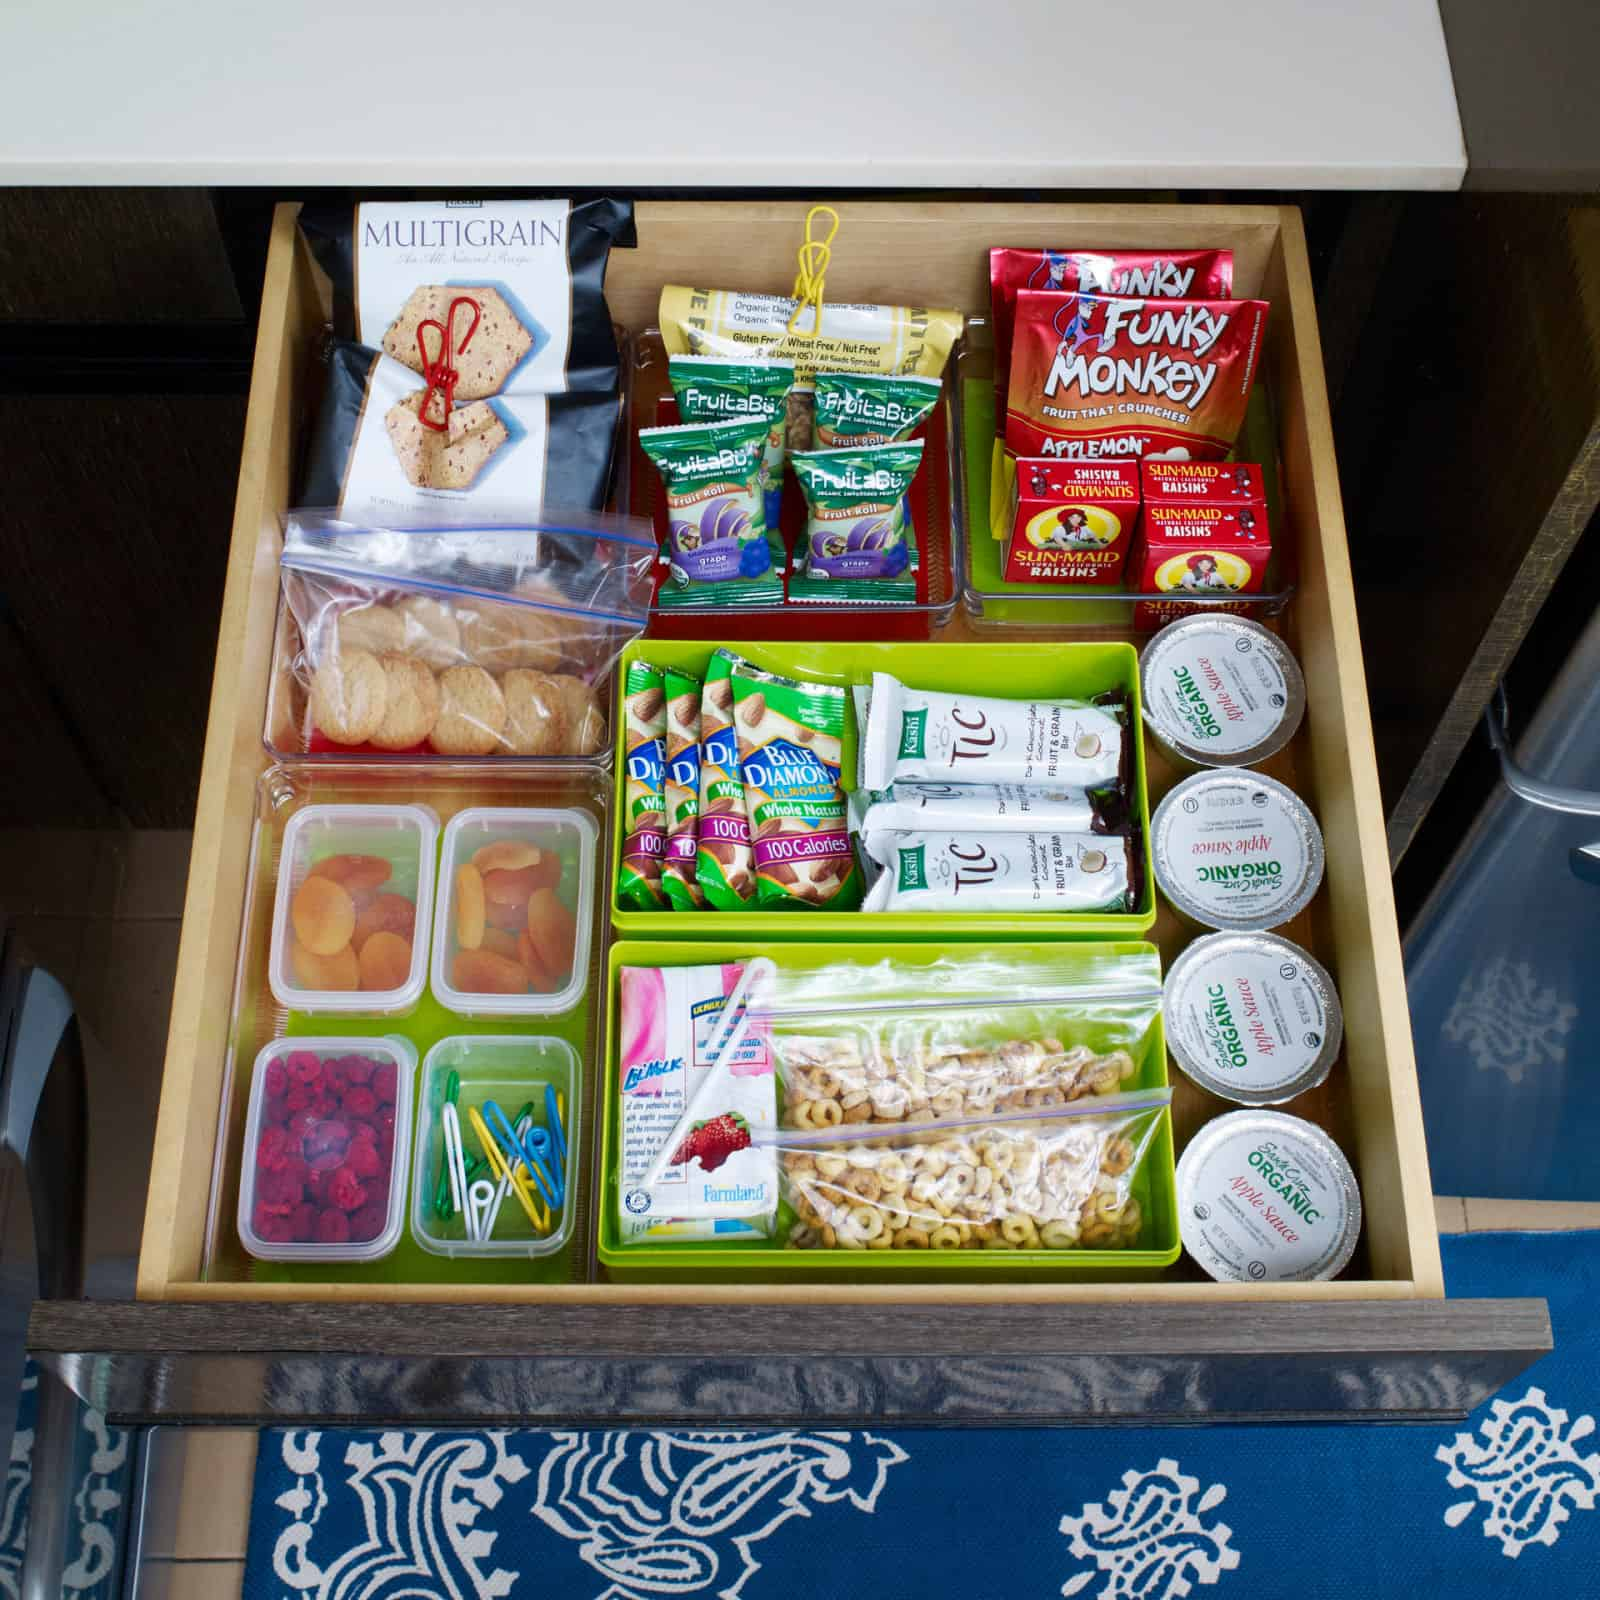 At home snack station for the kids